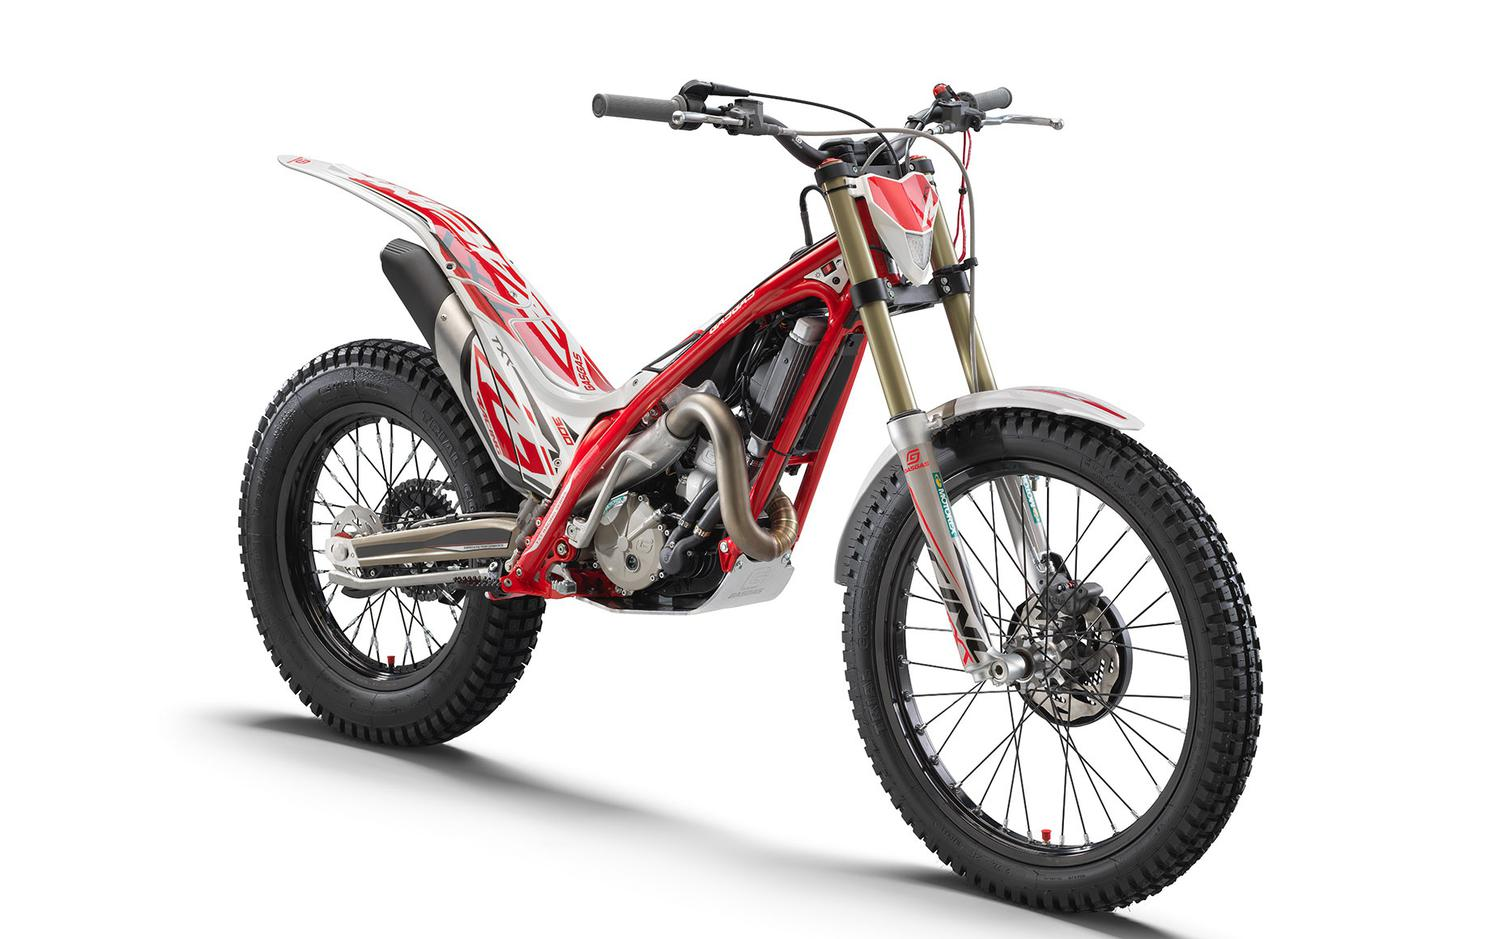 2022 Gas Gas TXT RACING 250 Frais inclus+Taxes